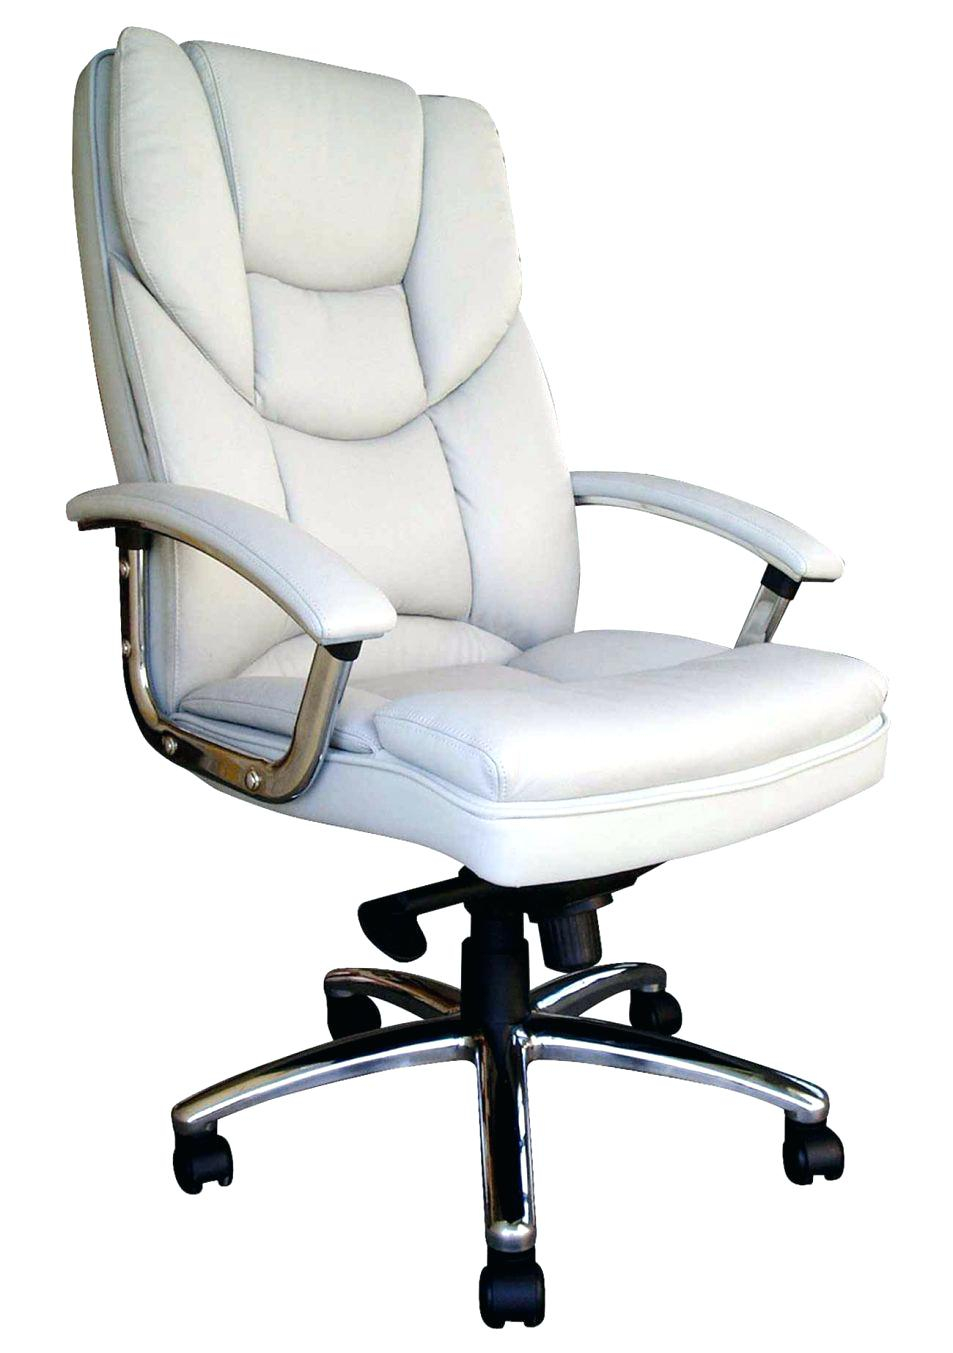 Desk Chairs White Leather Office Chair Under 100 Canada Modern with regard to sizing 953 X 1353